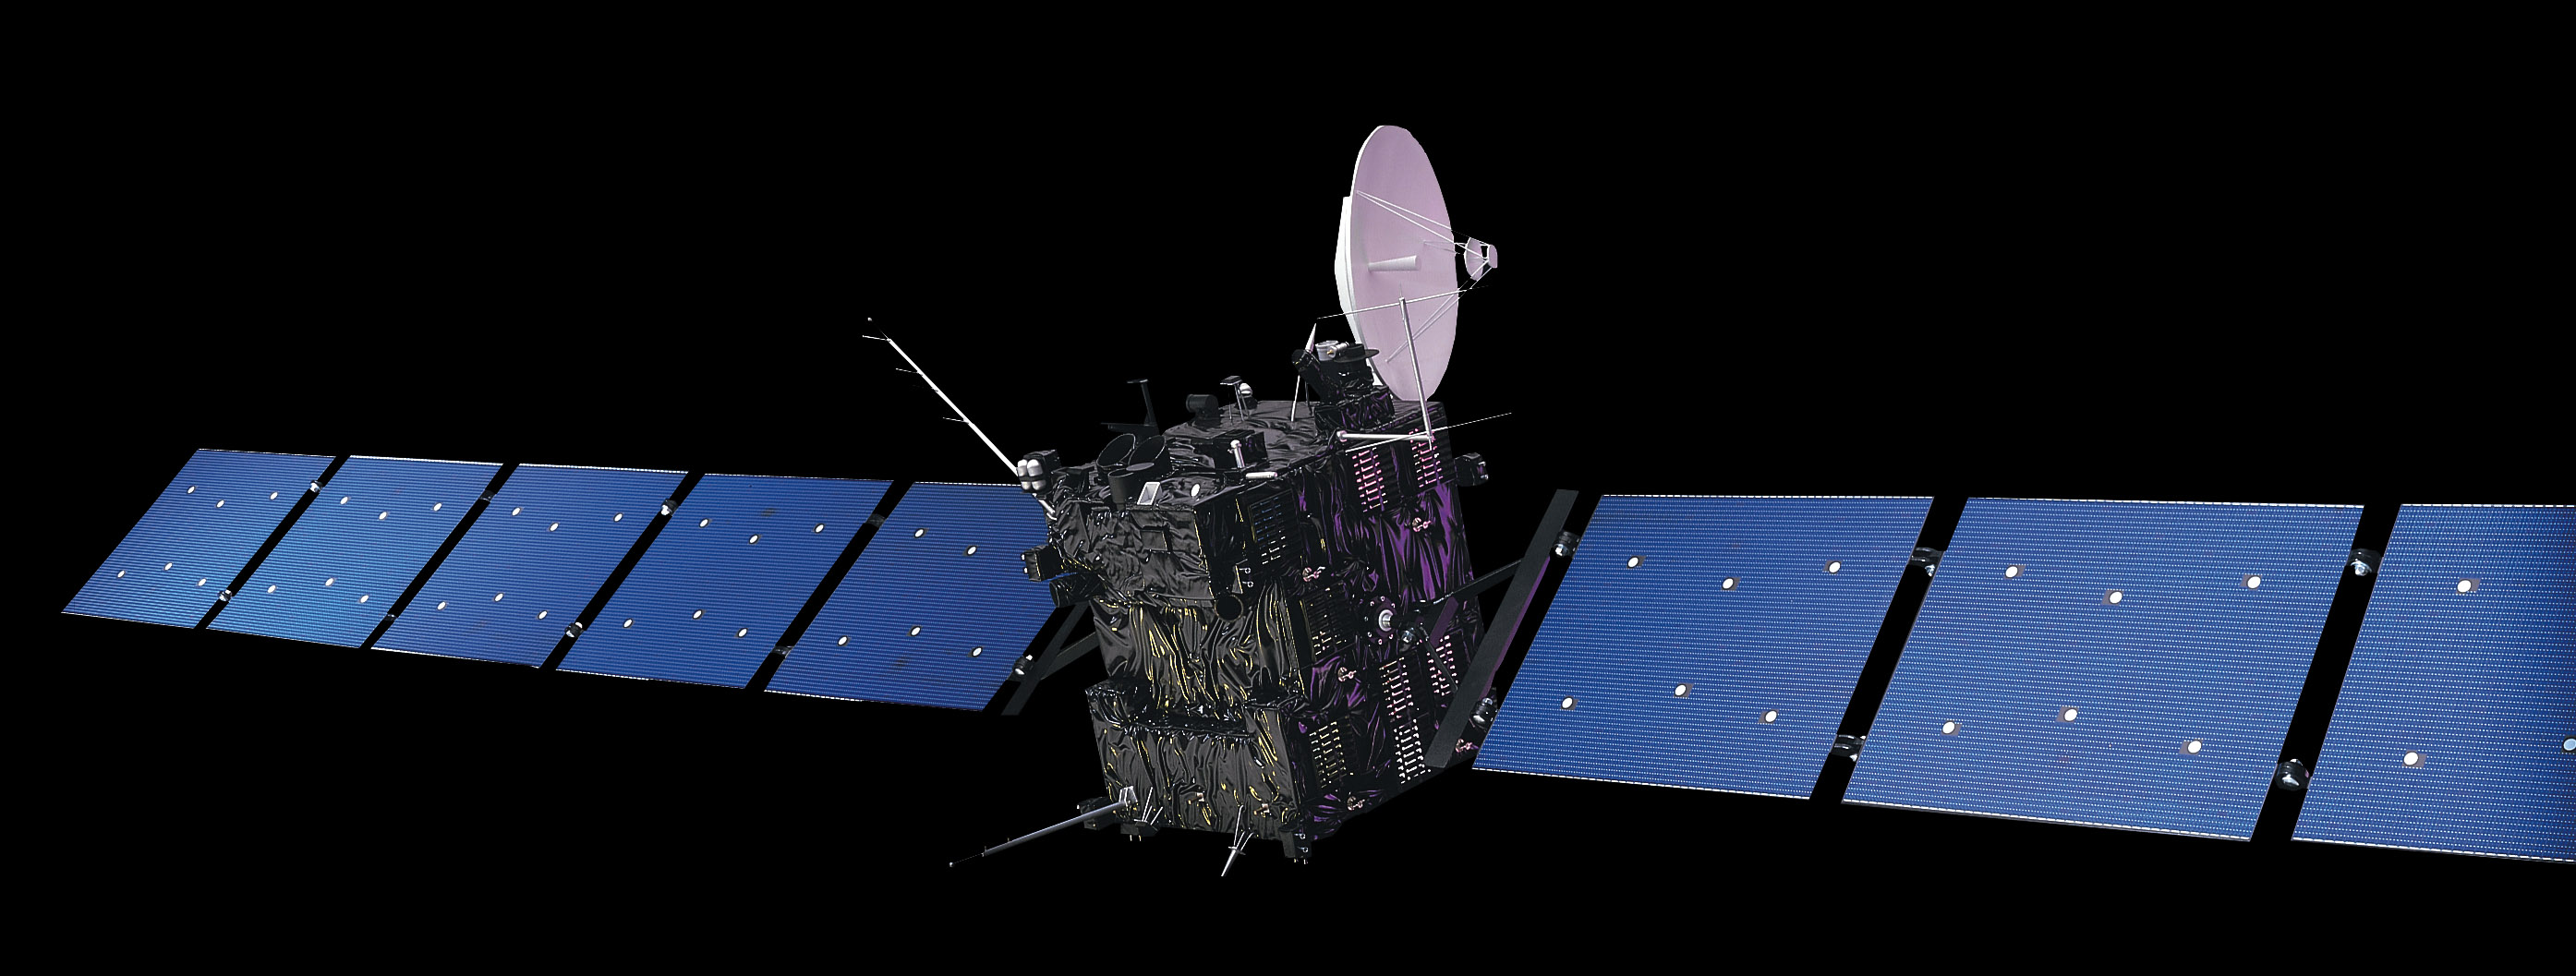 rosetta spacecraft esa logo - photo #37